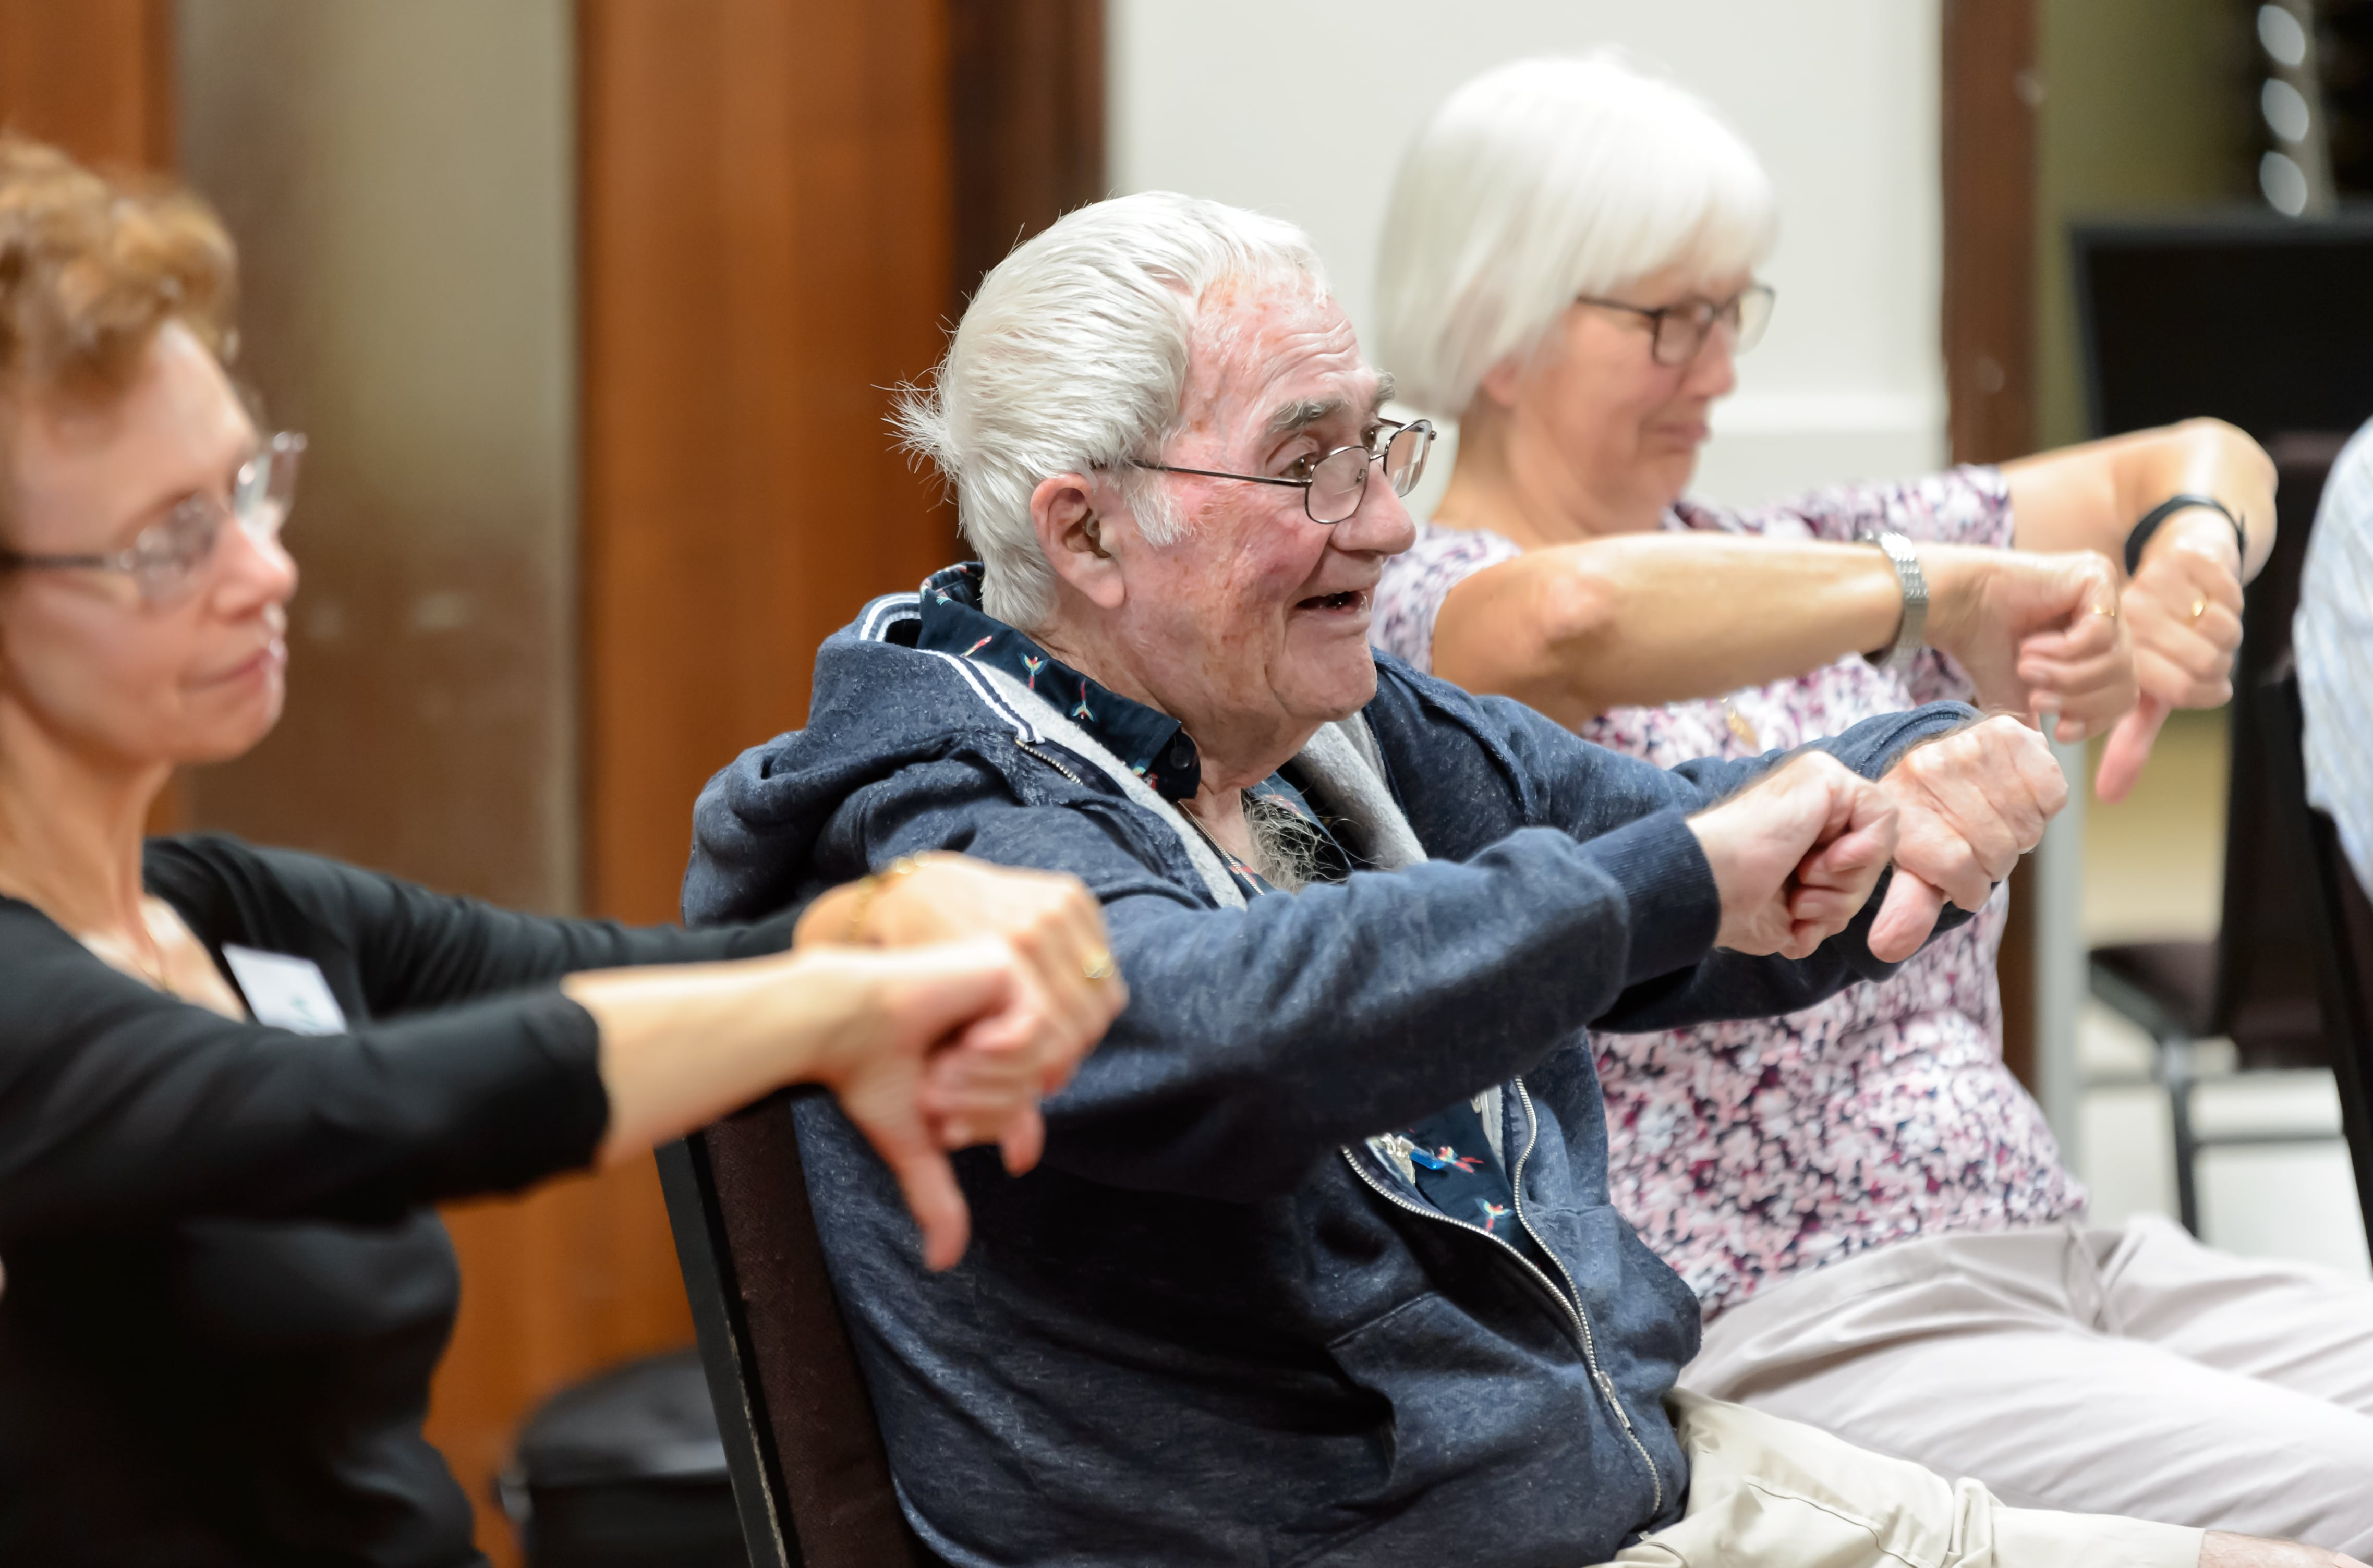 older people taking part in seated exercise class